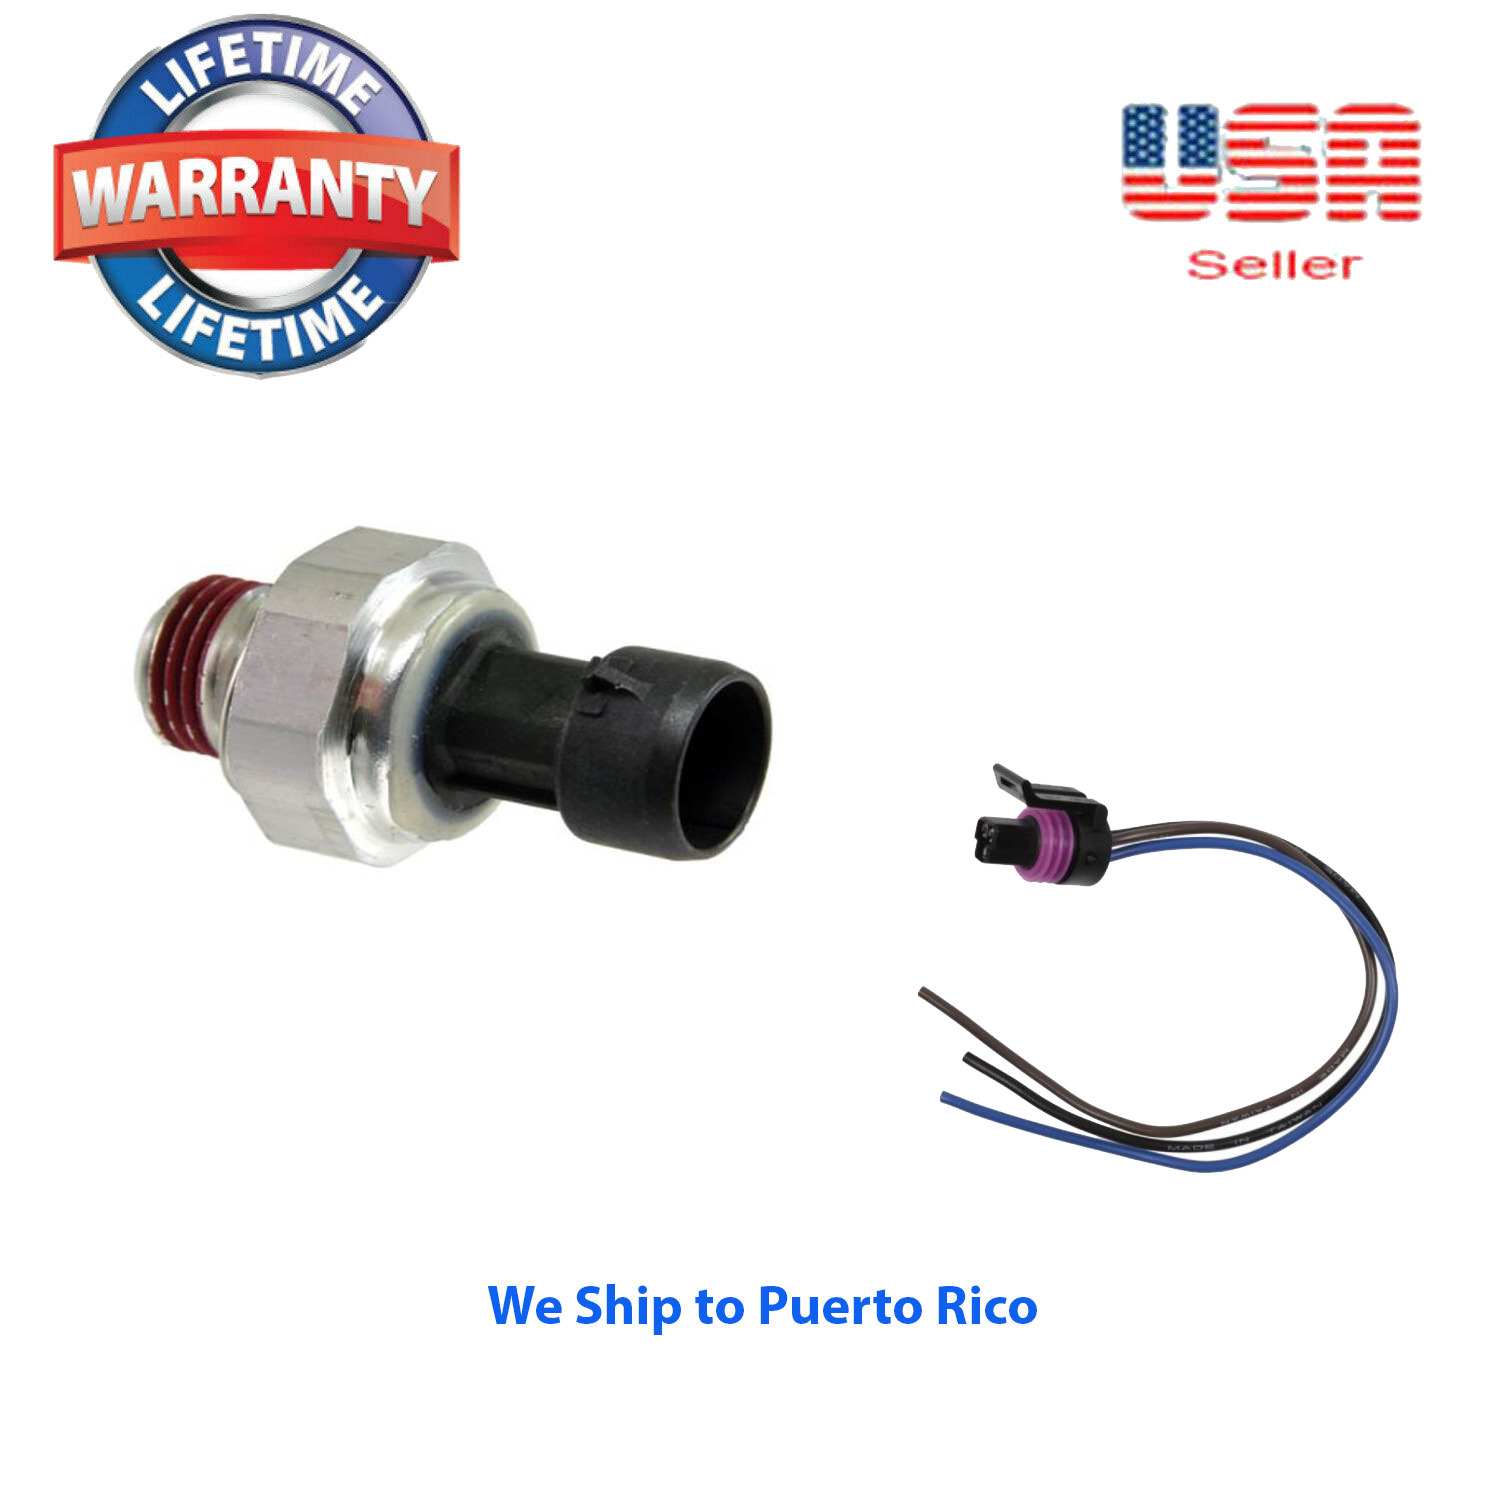 Engine Oil Pressure Sender With Pigtail Connector Kit Fits Gm 1999 Honda Accord Sending Unit 1 Of 1free Shipping